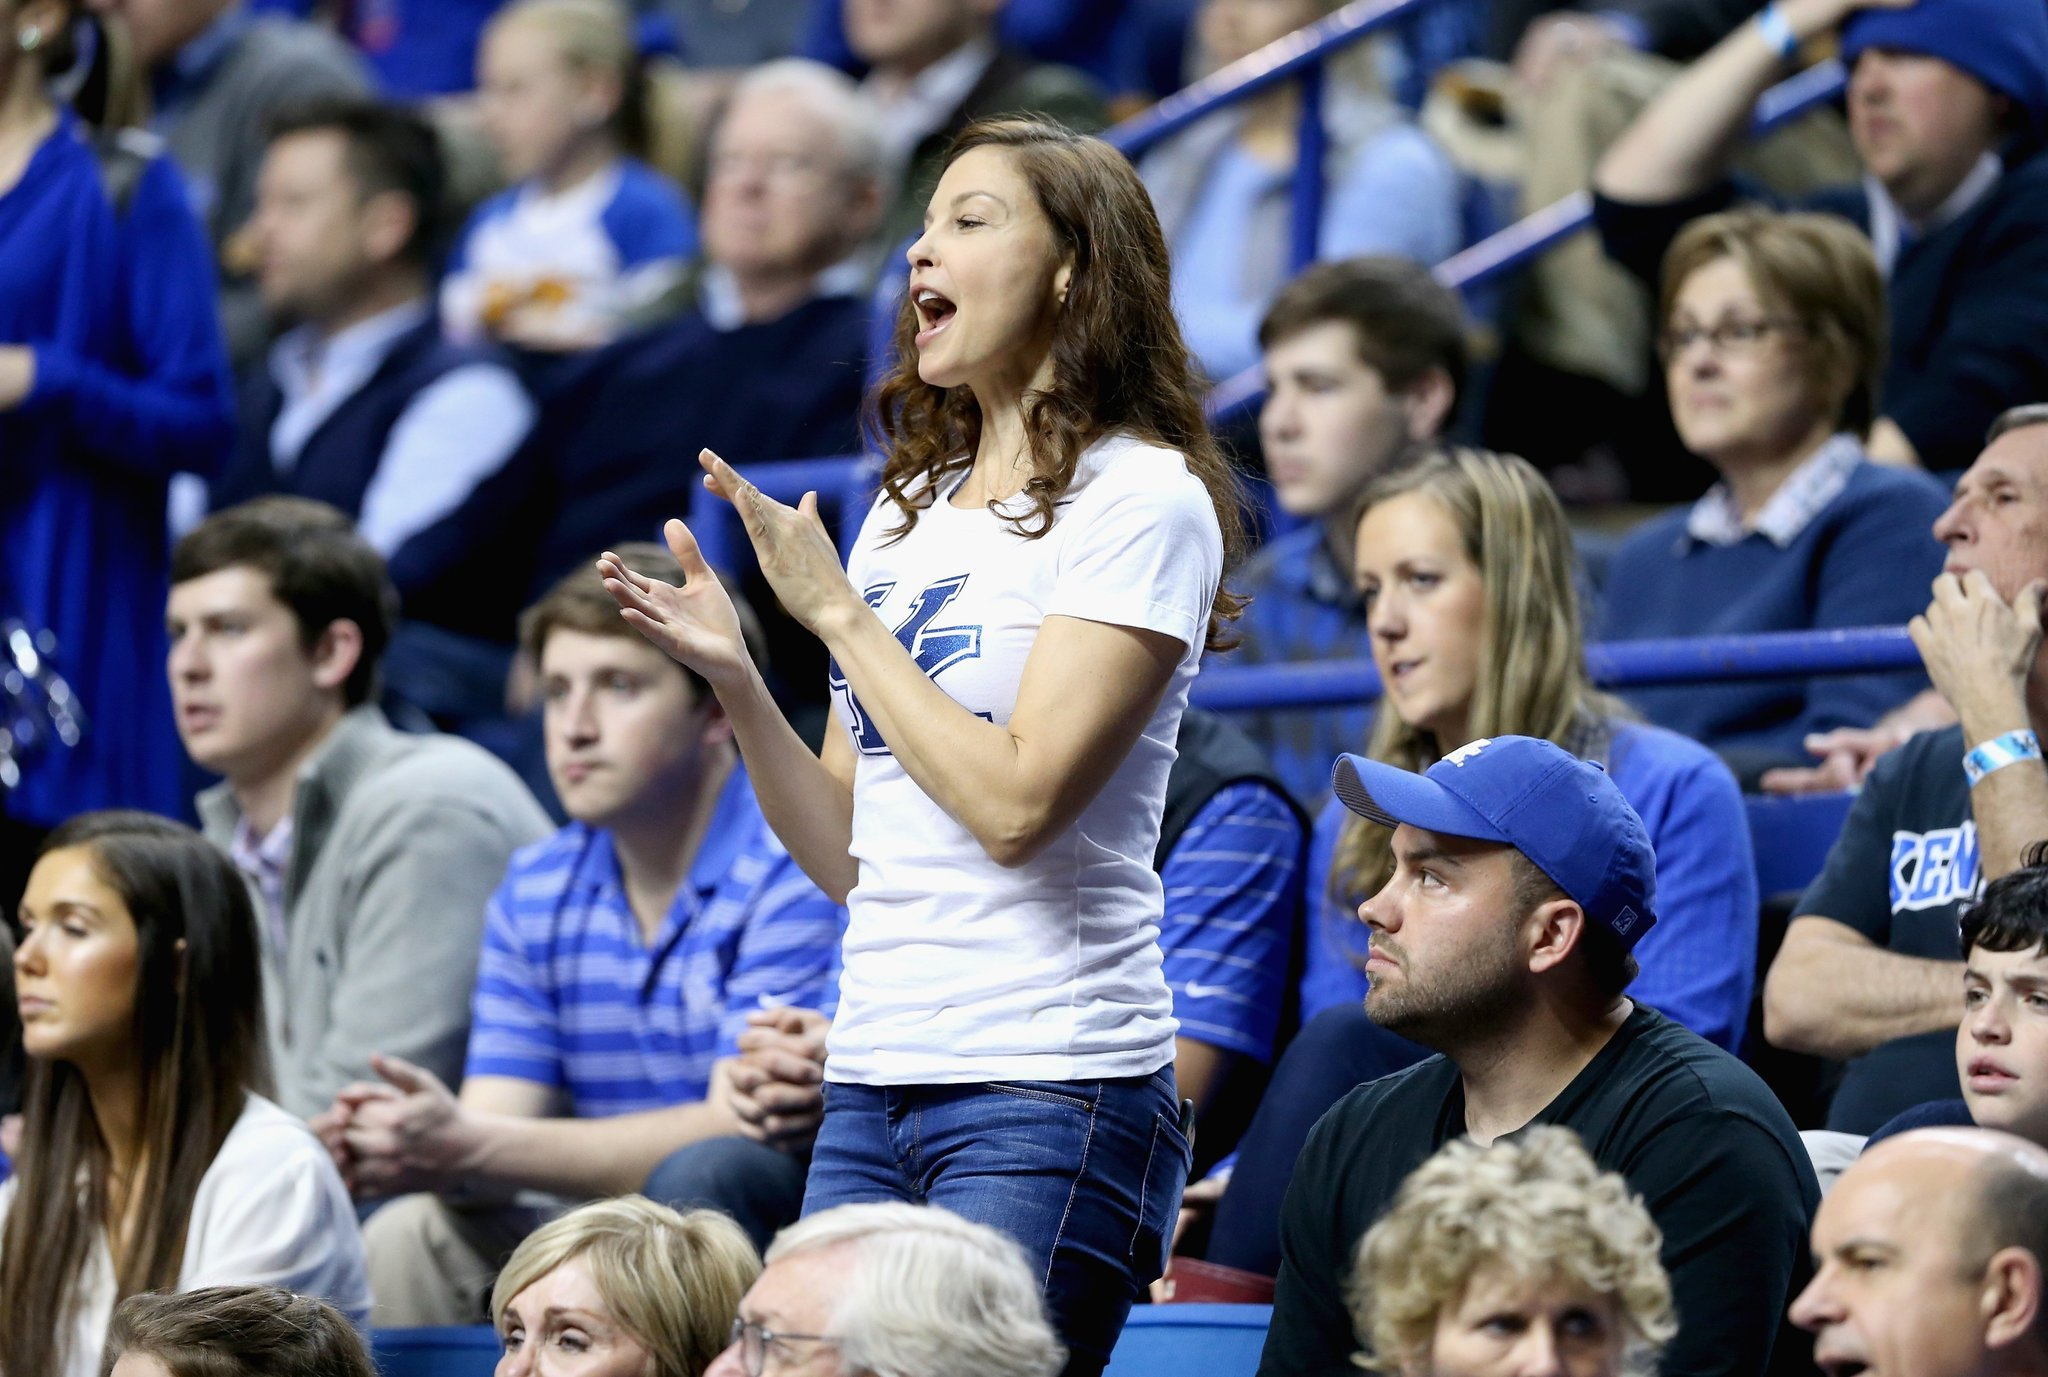 Ashley Judd arkansas